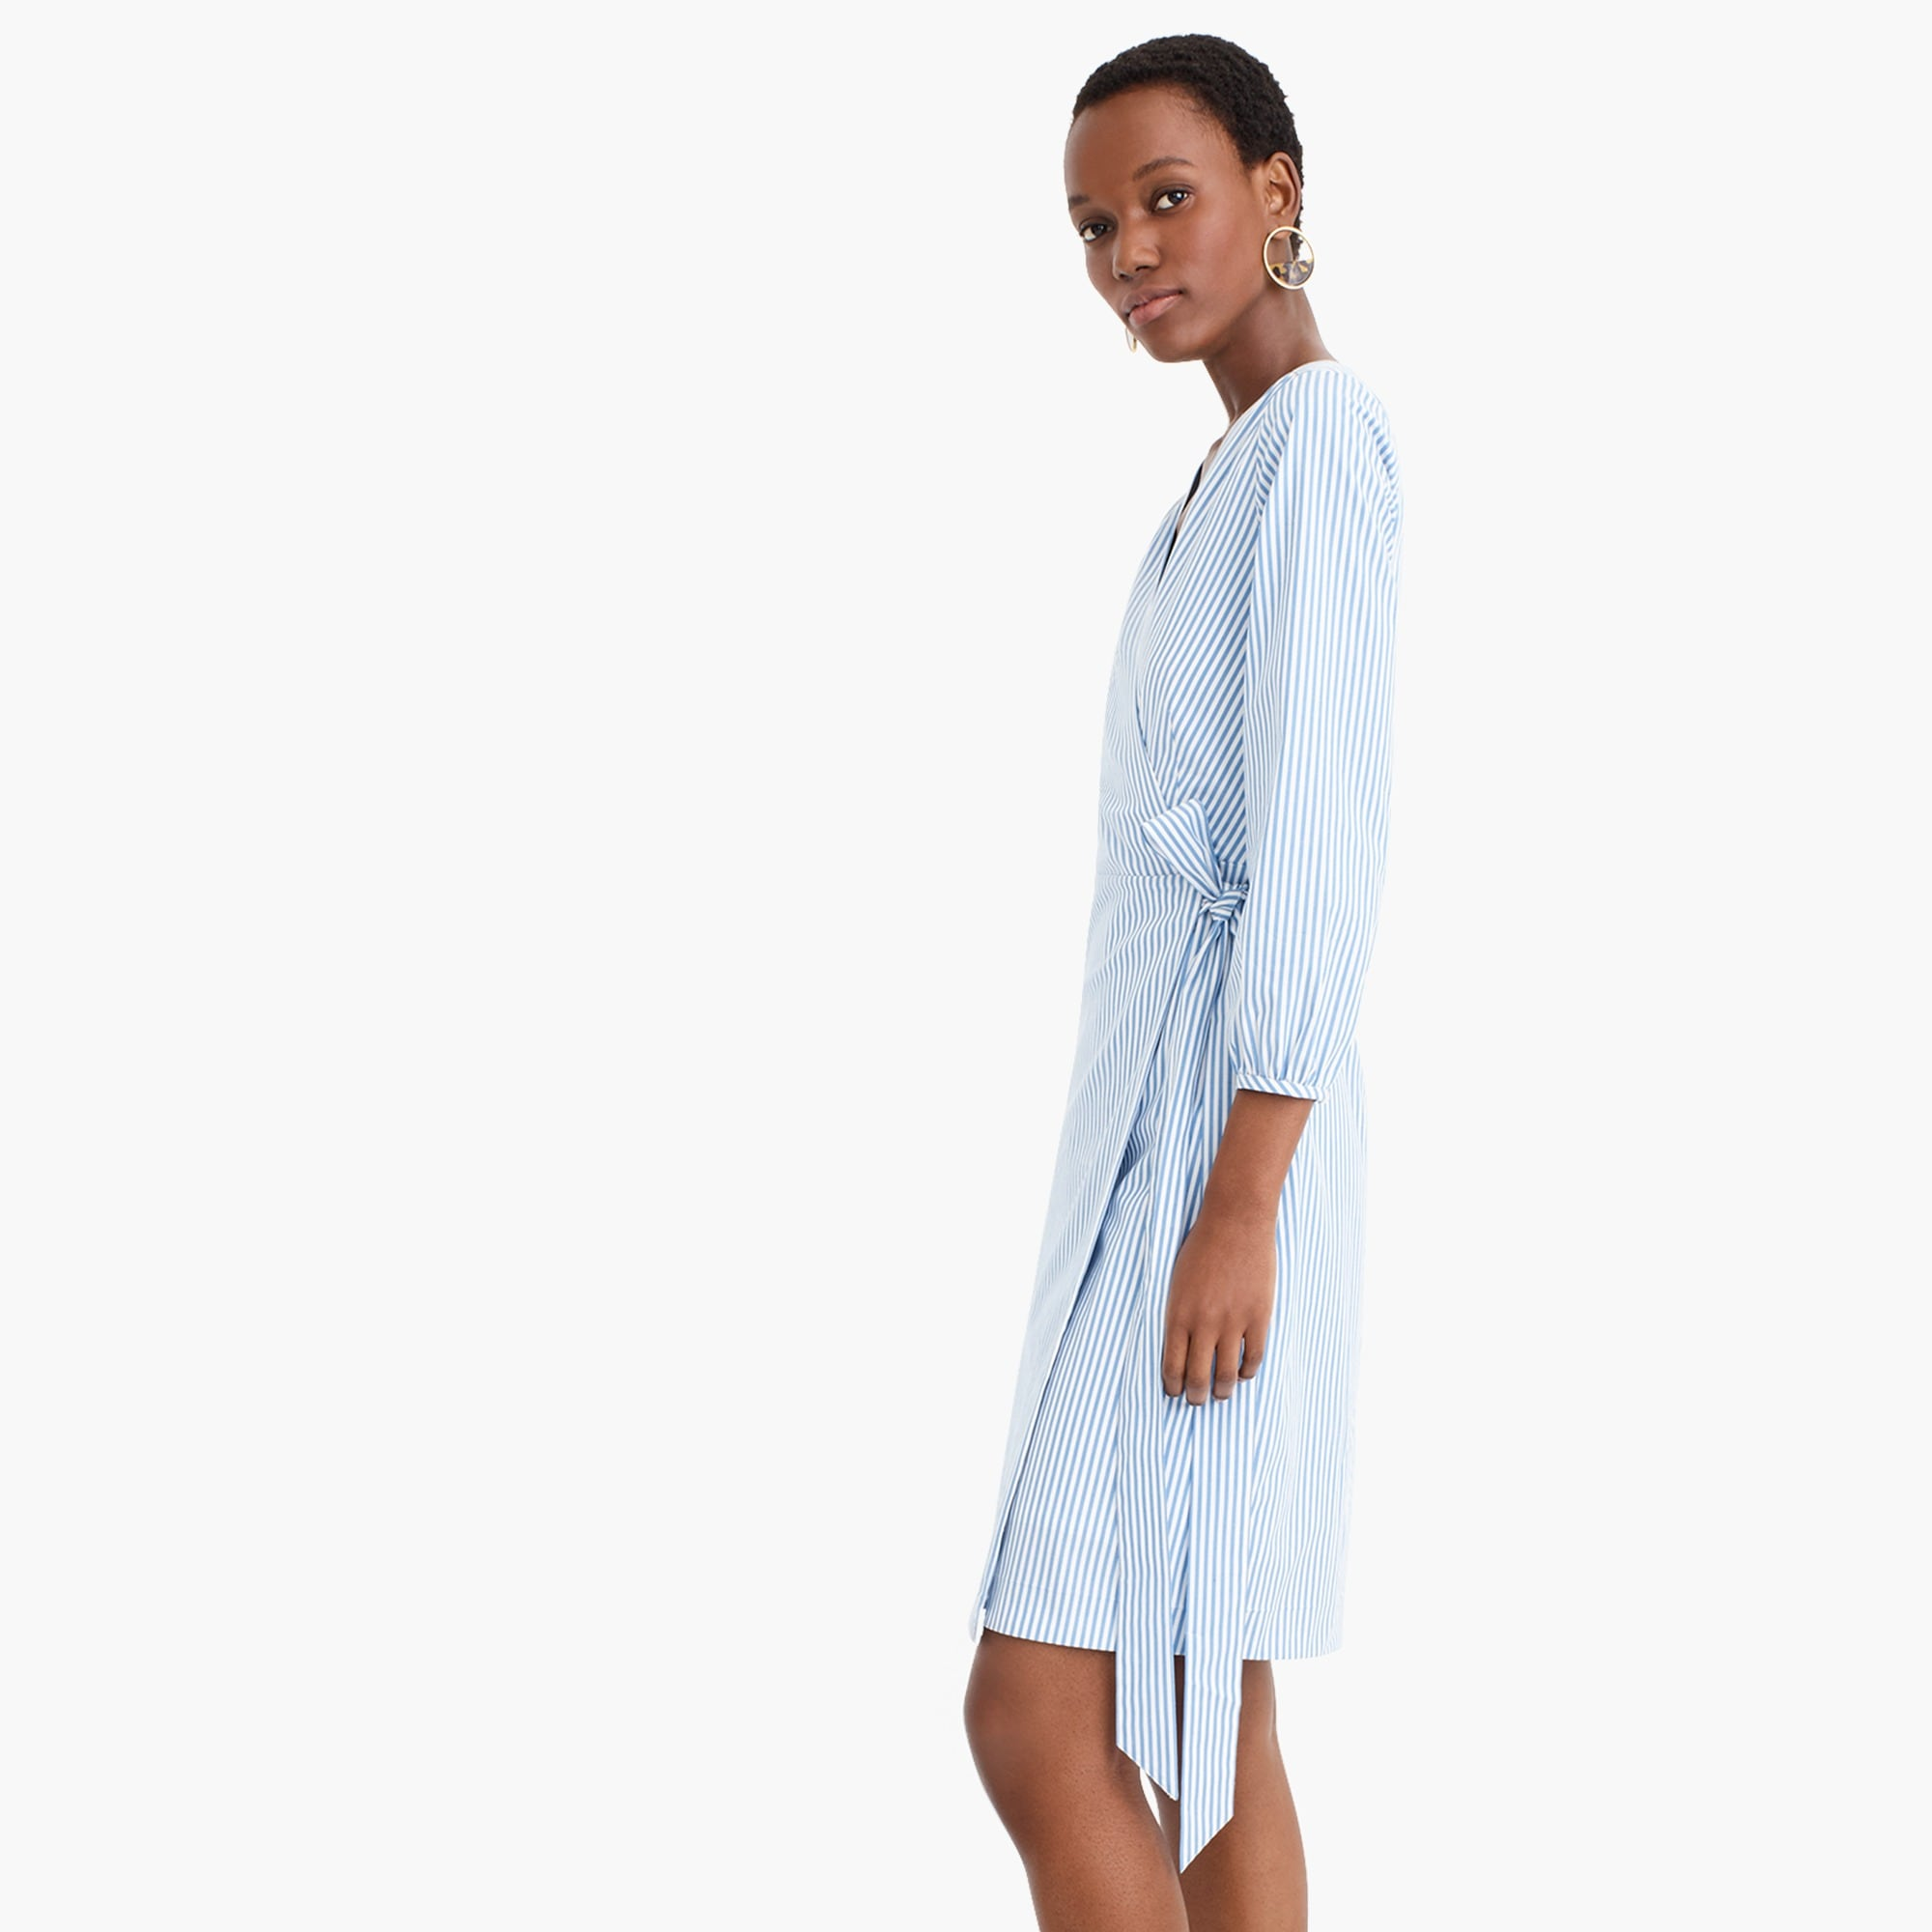 Image 4 for Wrap dress in striped cotton poplin